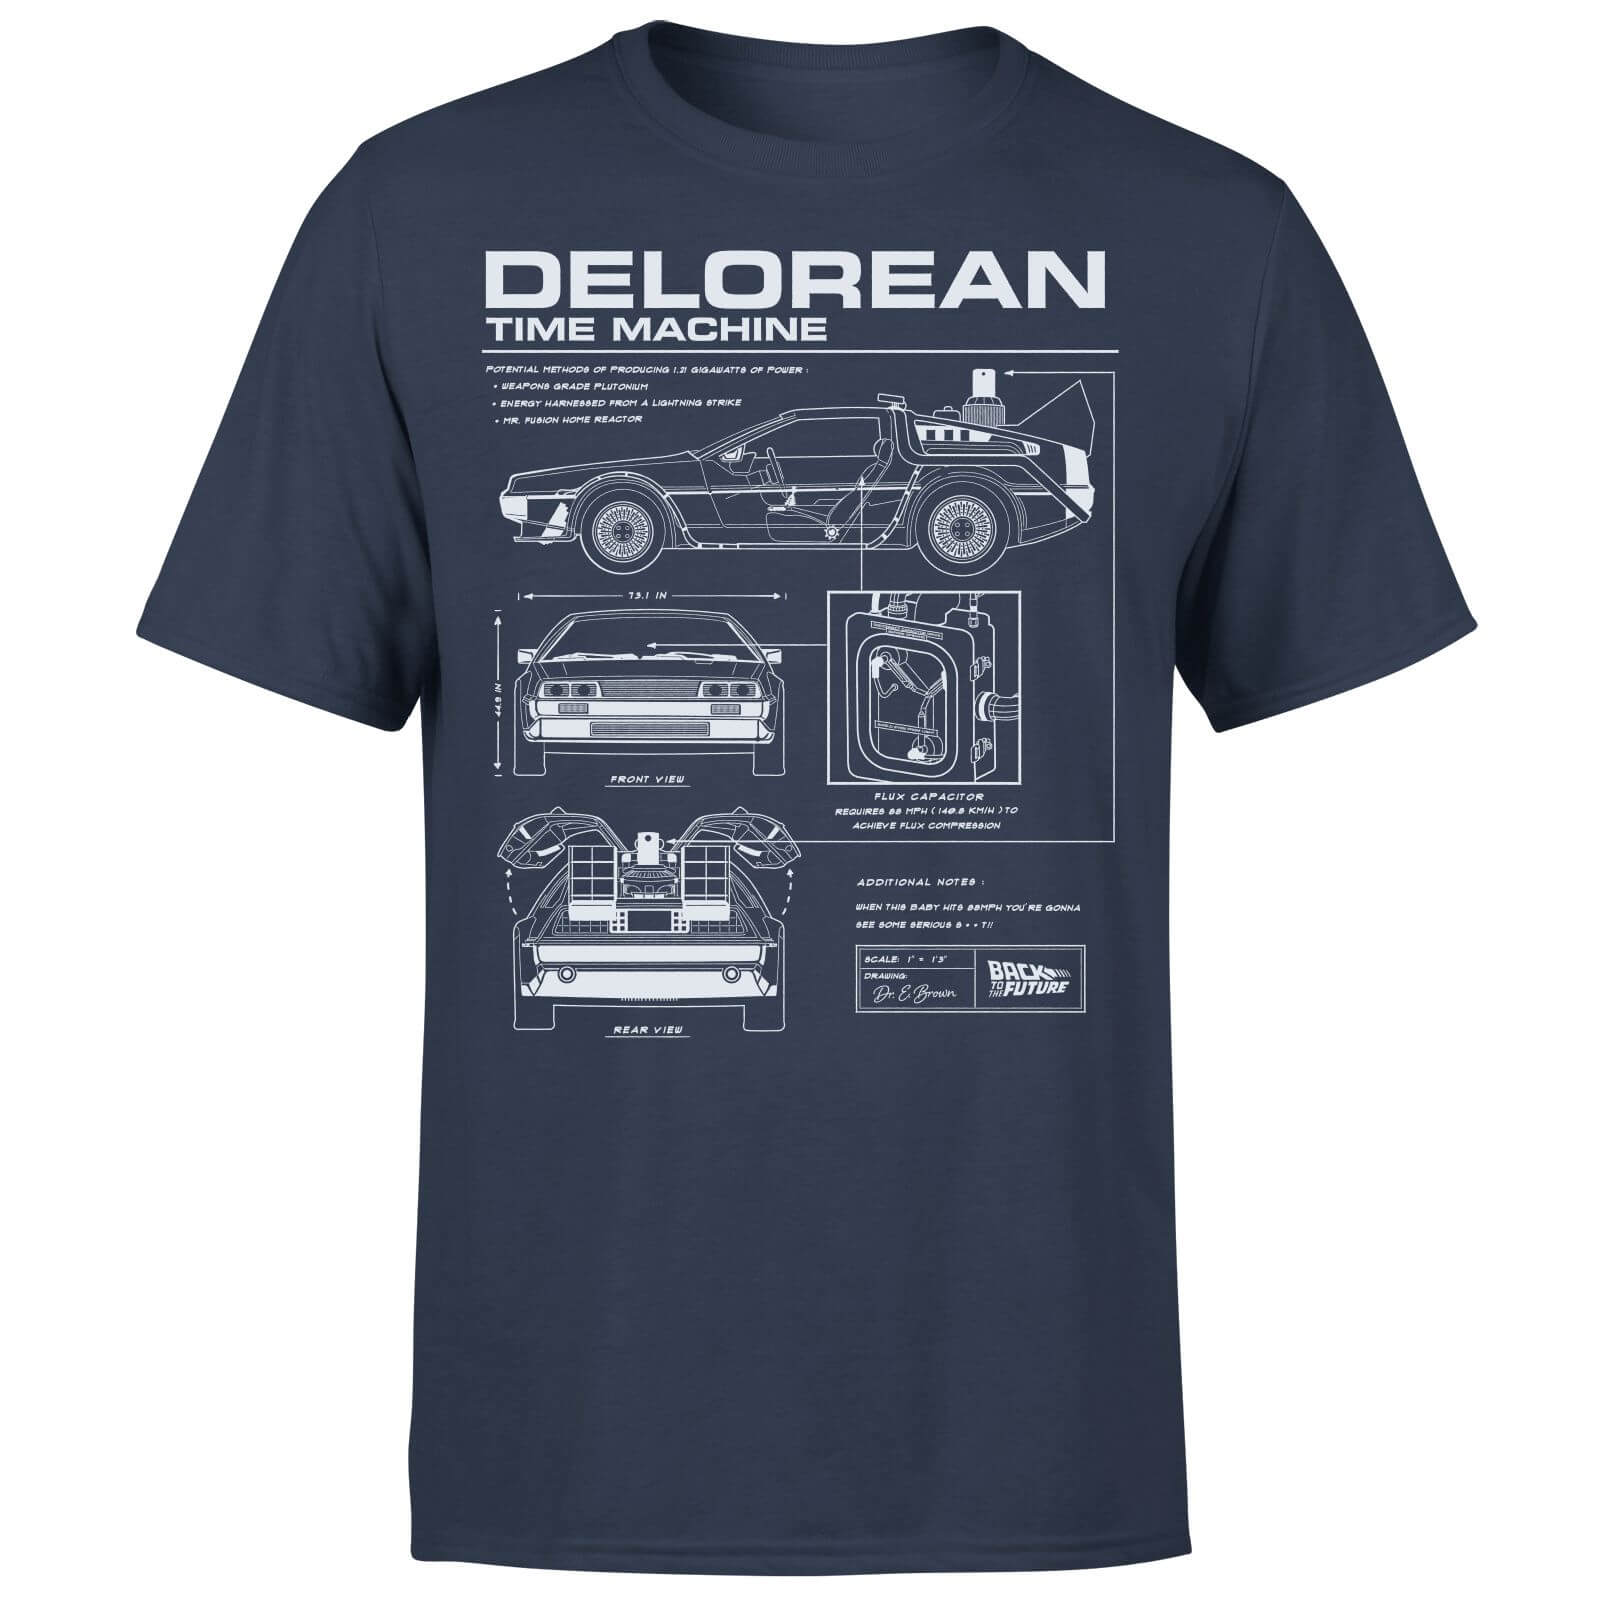 Back to the Future DeLorean Schematic T-shirt - Navy - M - Navy blauw